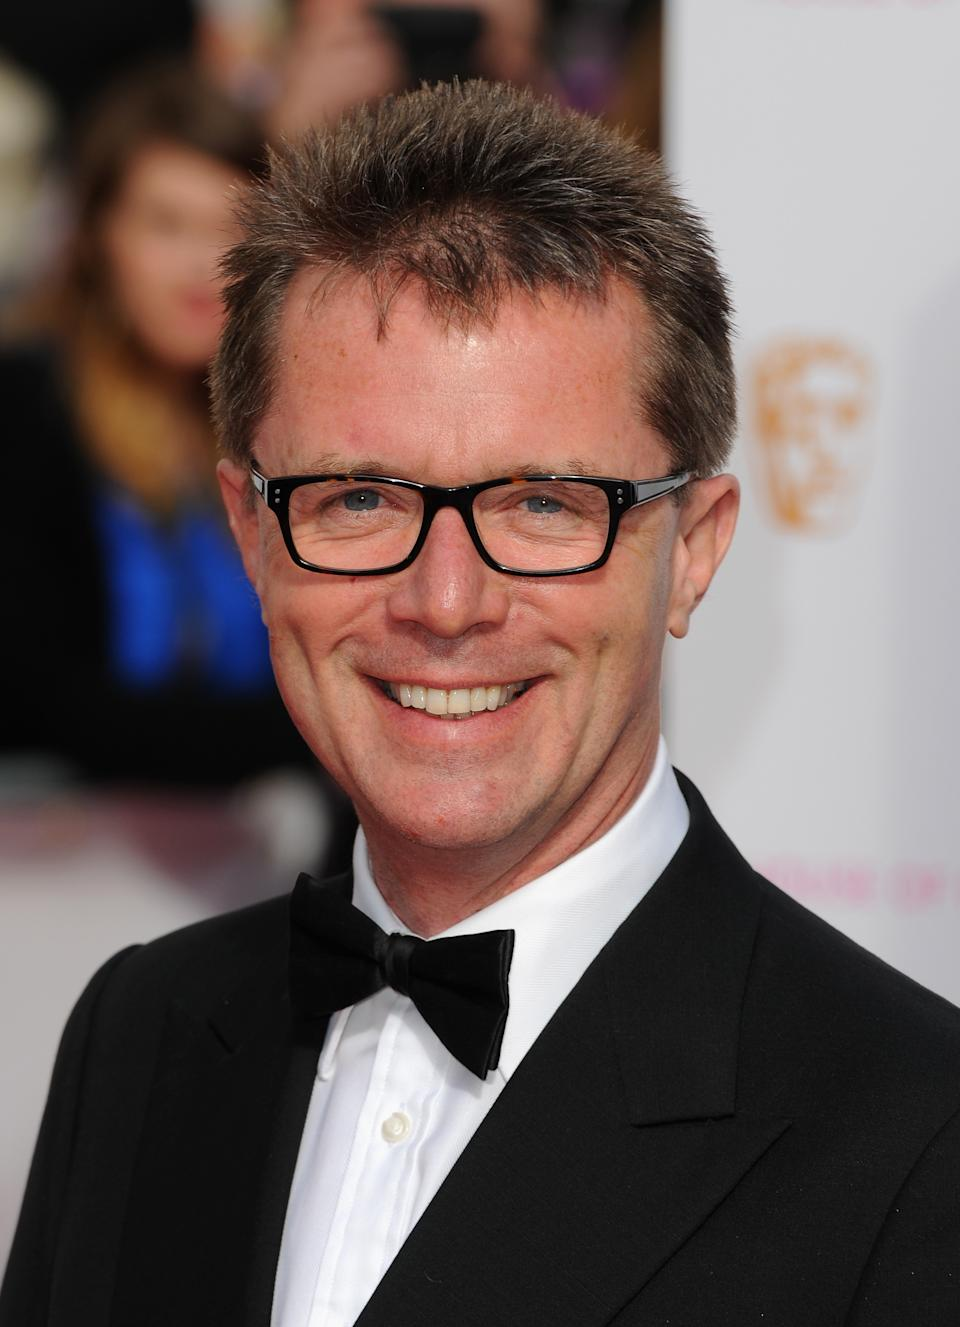 LONDON, ENGLAND - MAY 10:  Nicky Campbell attends the House of Fraser British Academy Television Awards at Theatre Royal on May 10, 2015 in London, England.  (Photo by Eamonn McCormack/WireImage)